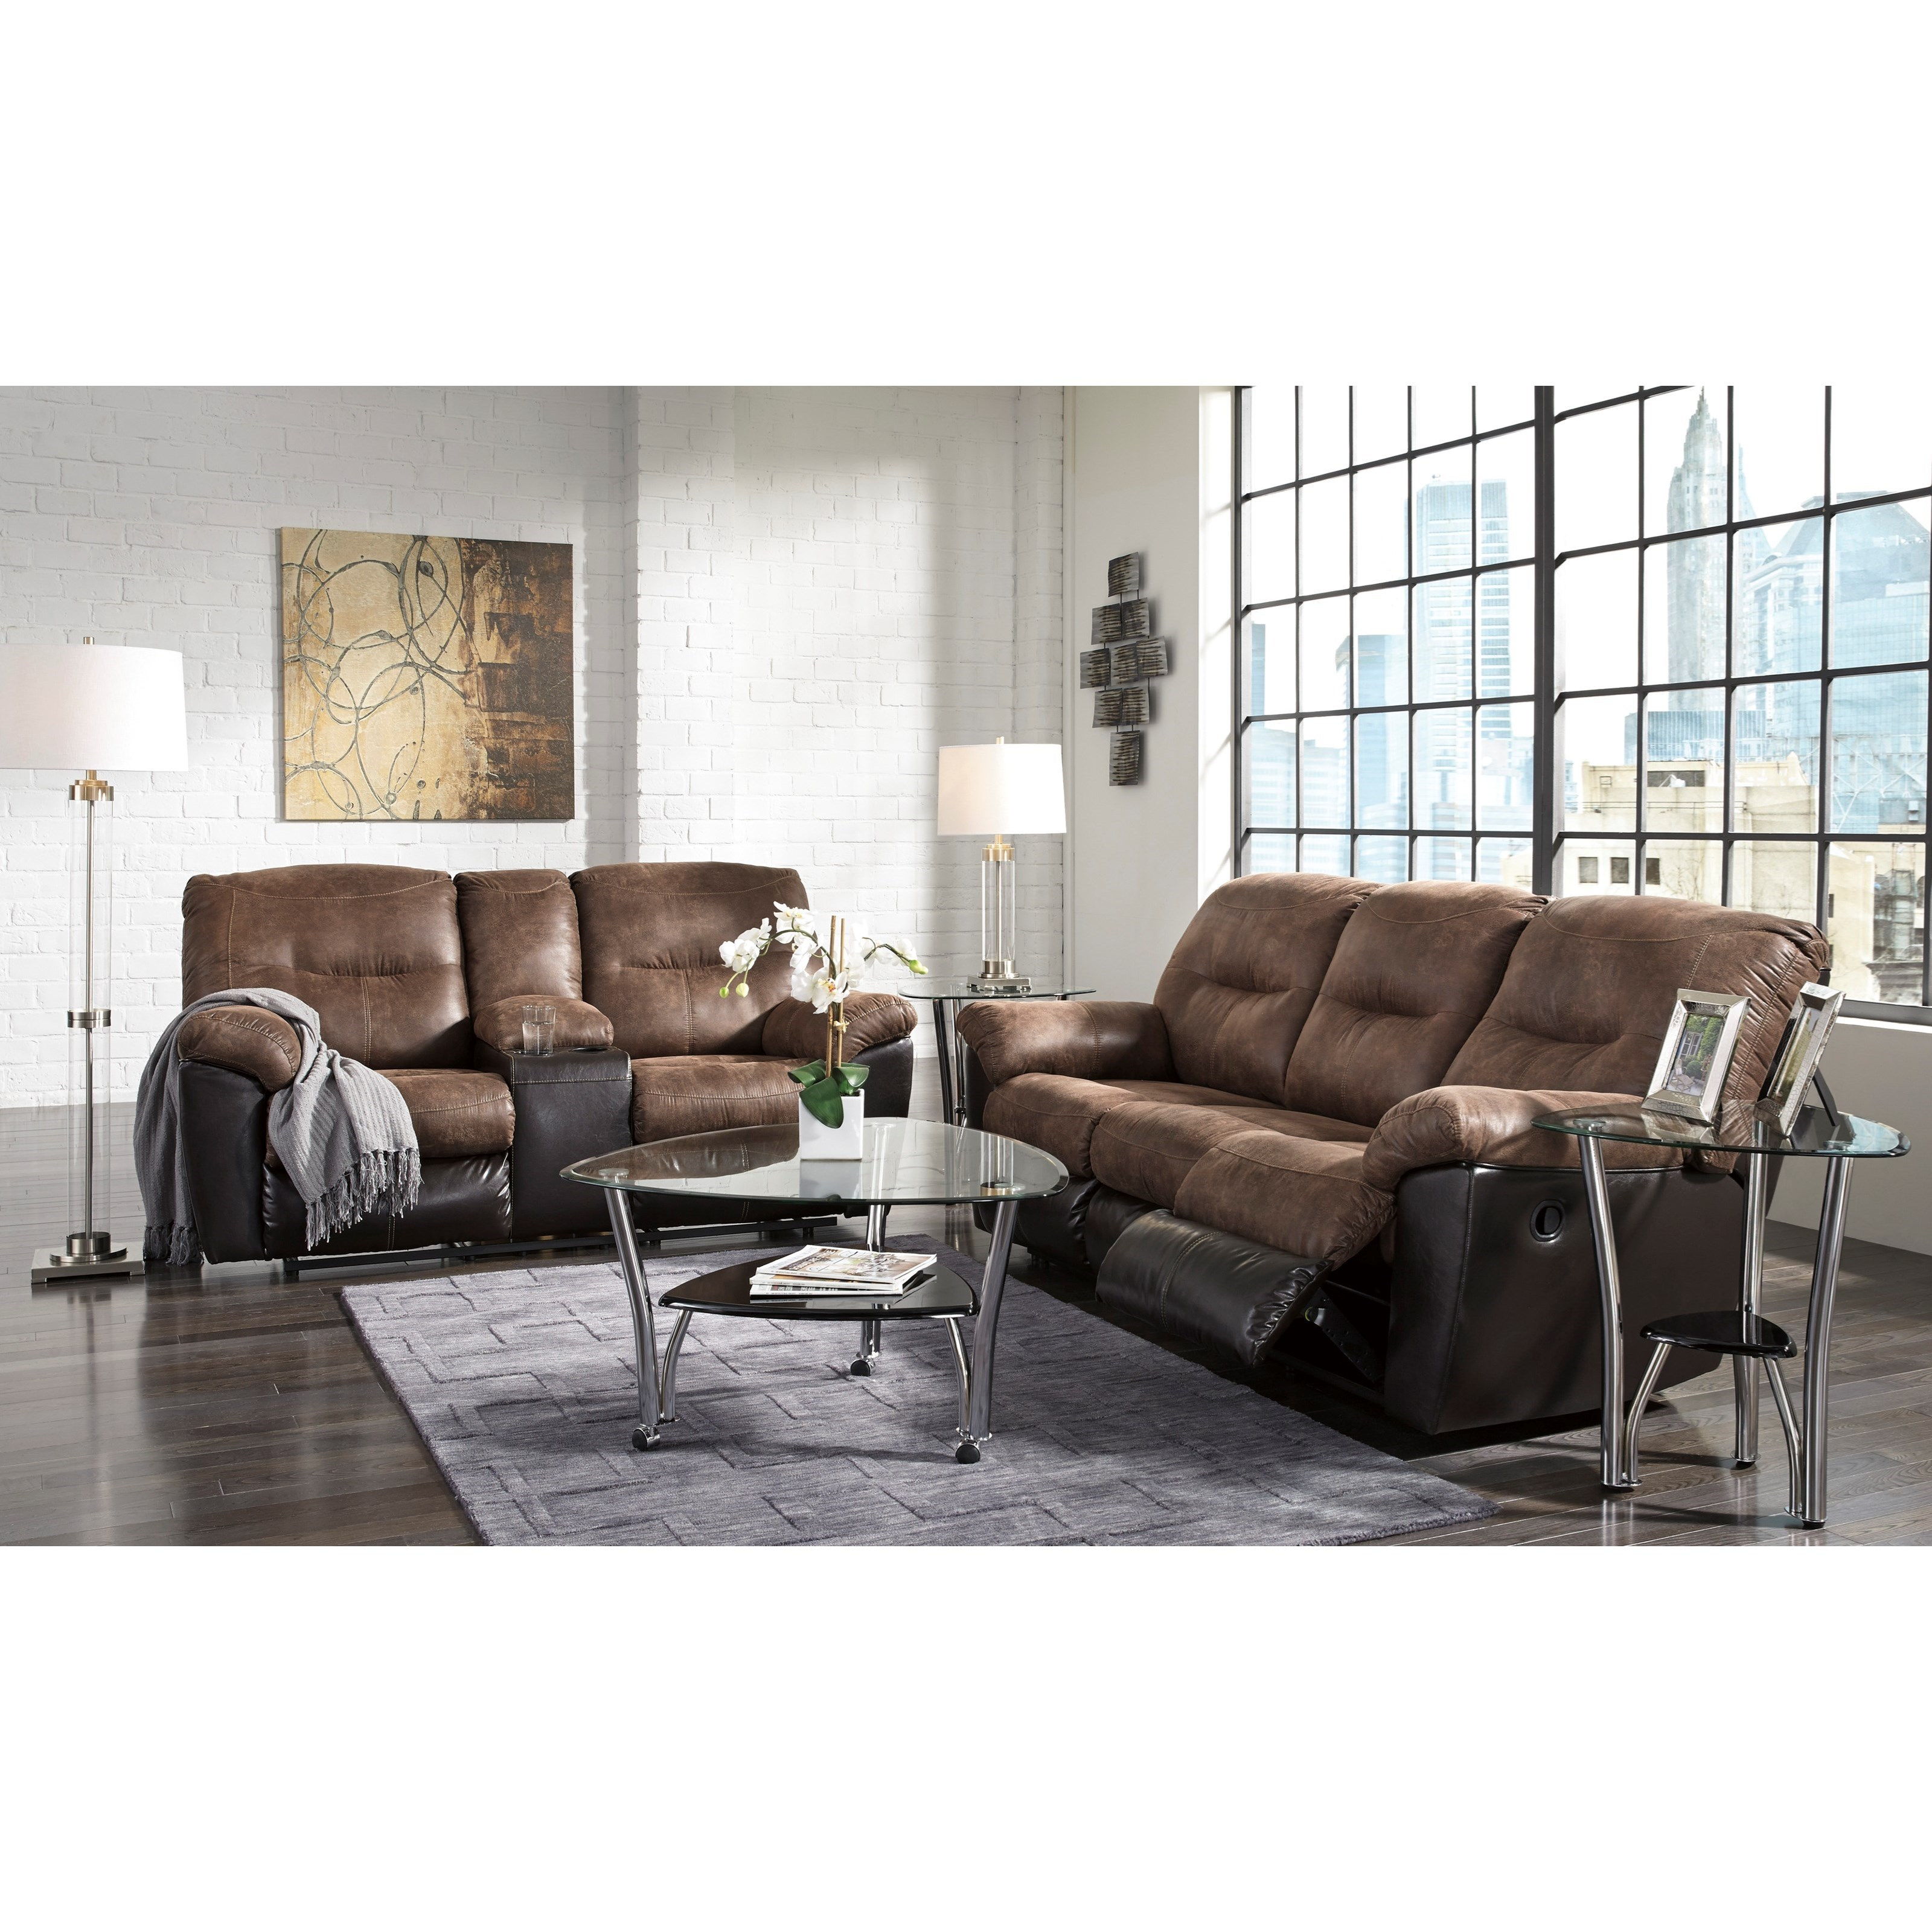 Two Tone Faux Leather Reclining Sofa by Signature Design by Ashley